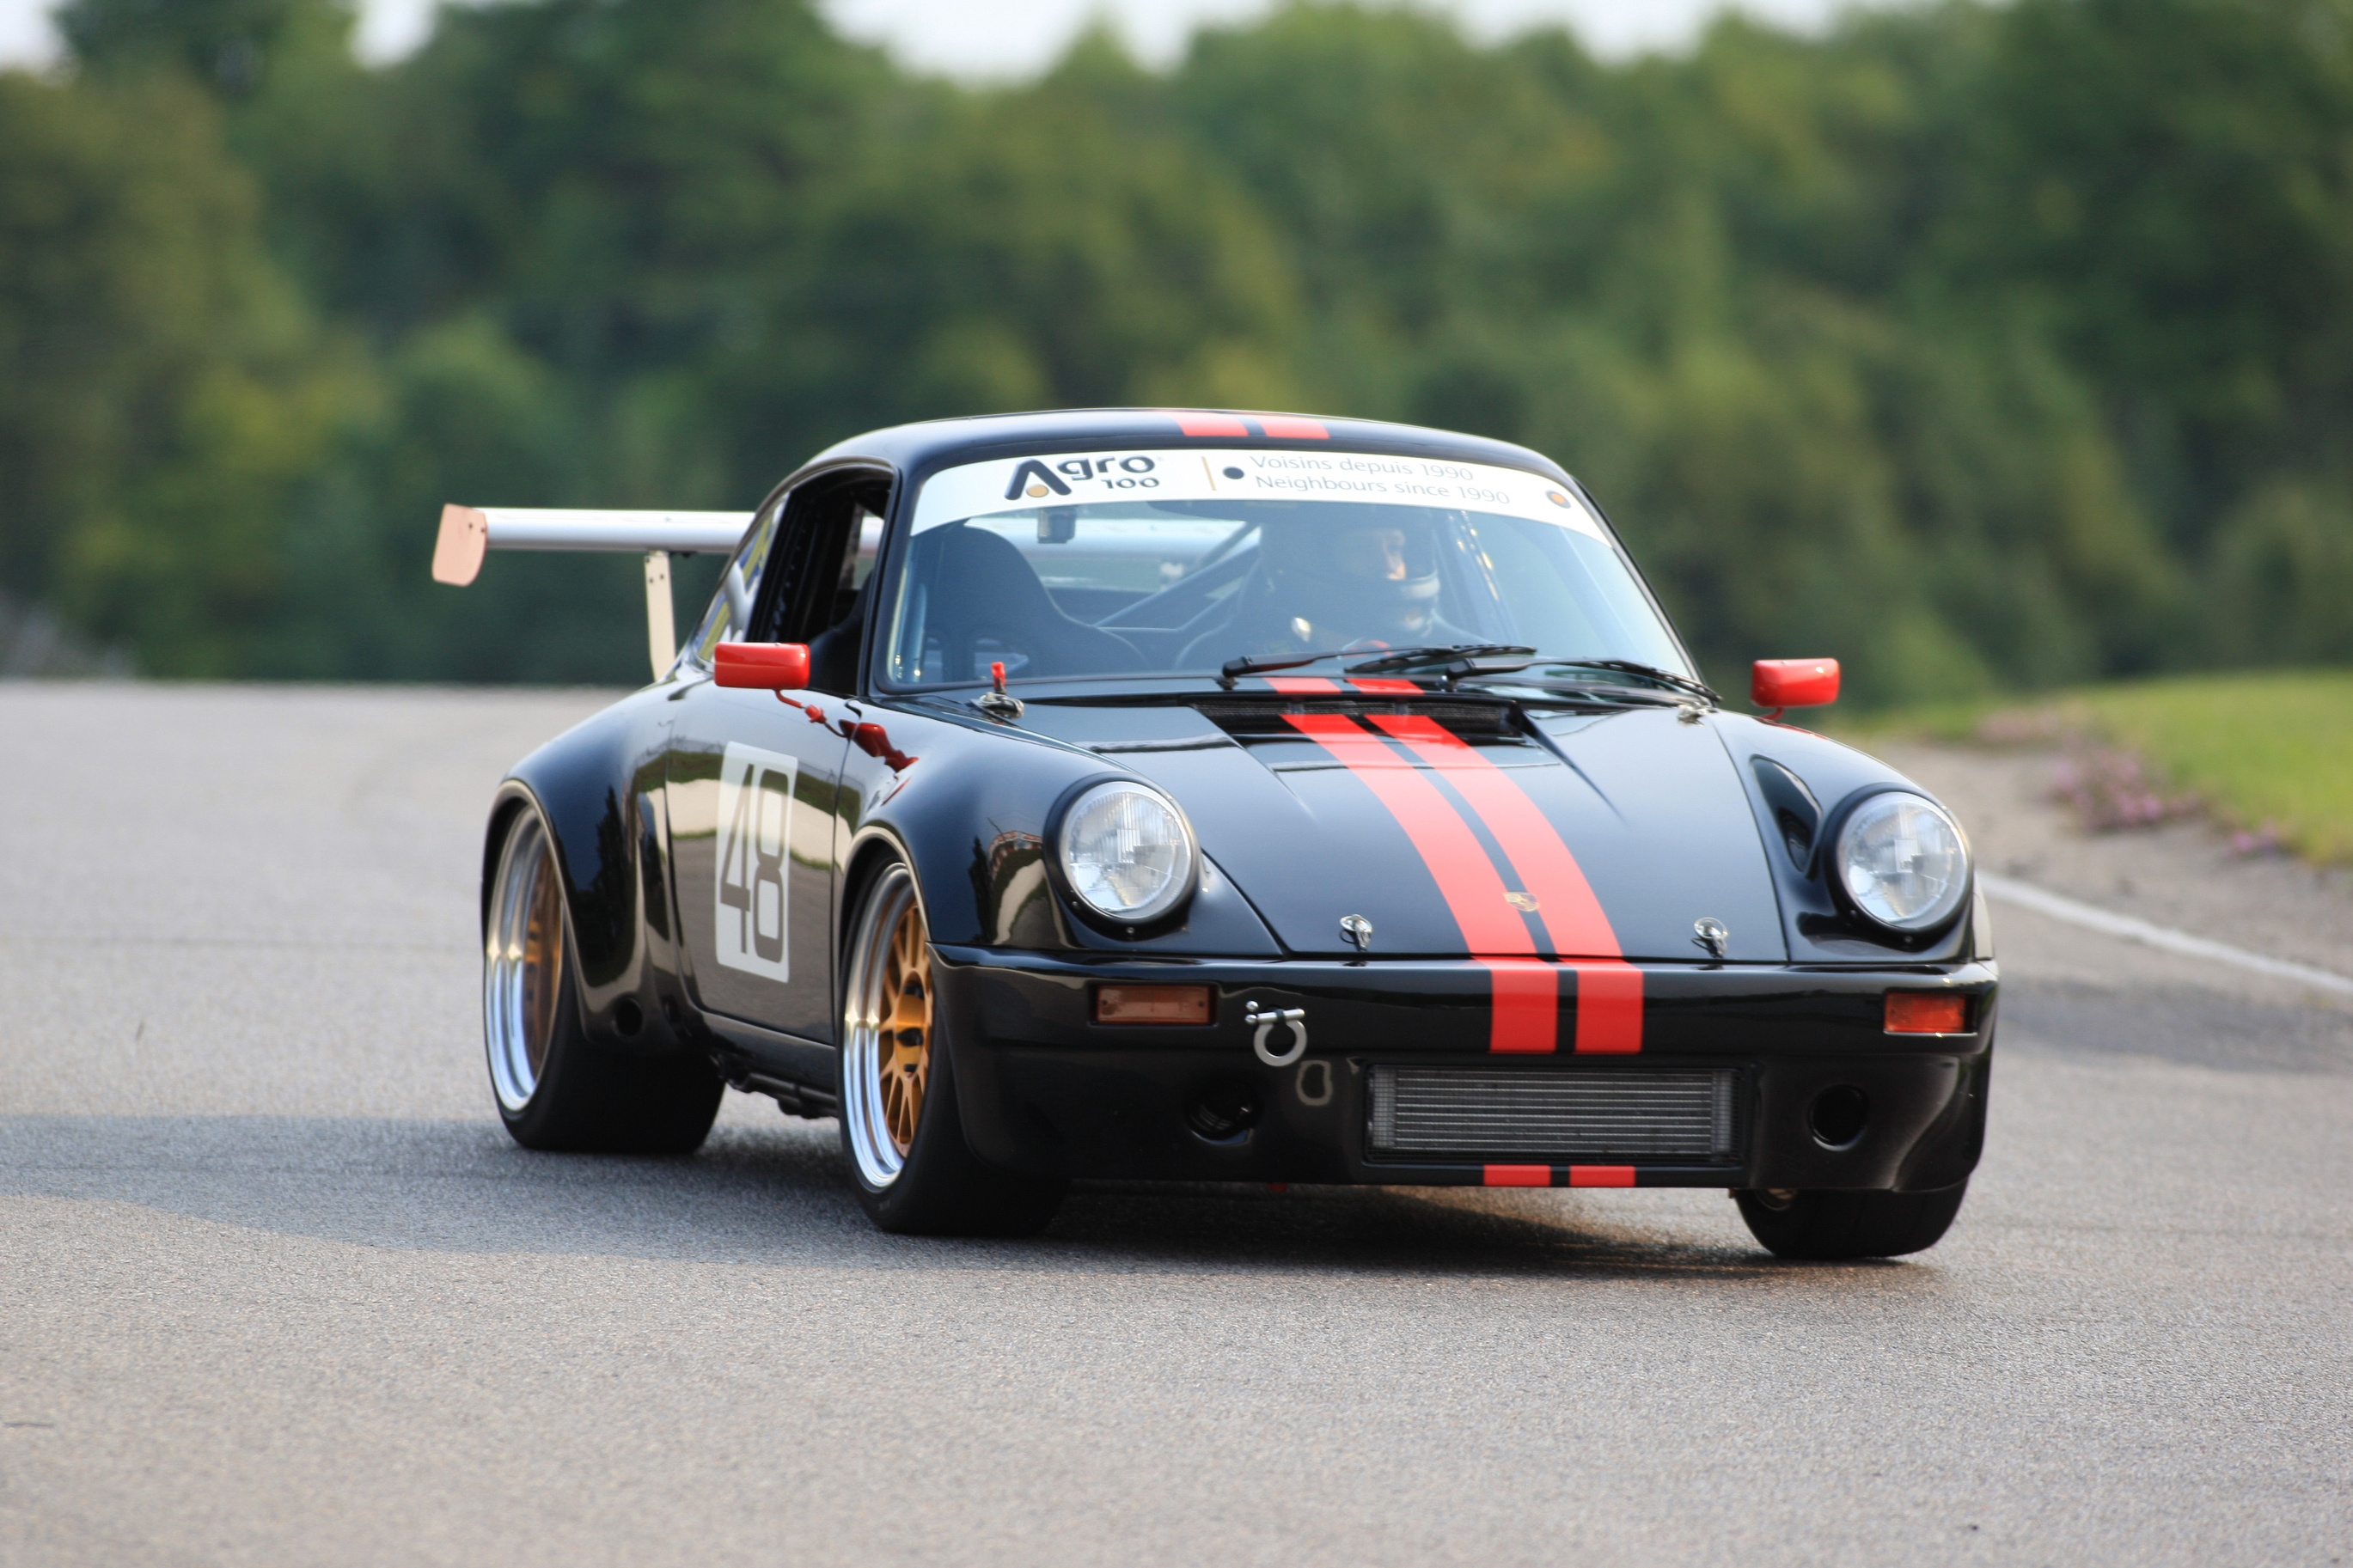 Porsche 911 Race Car For Sale In Terrebonne 79000